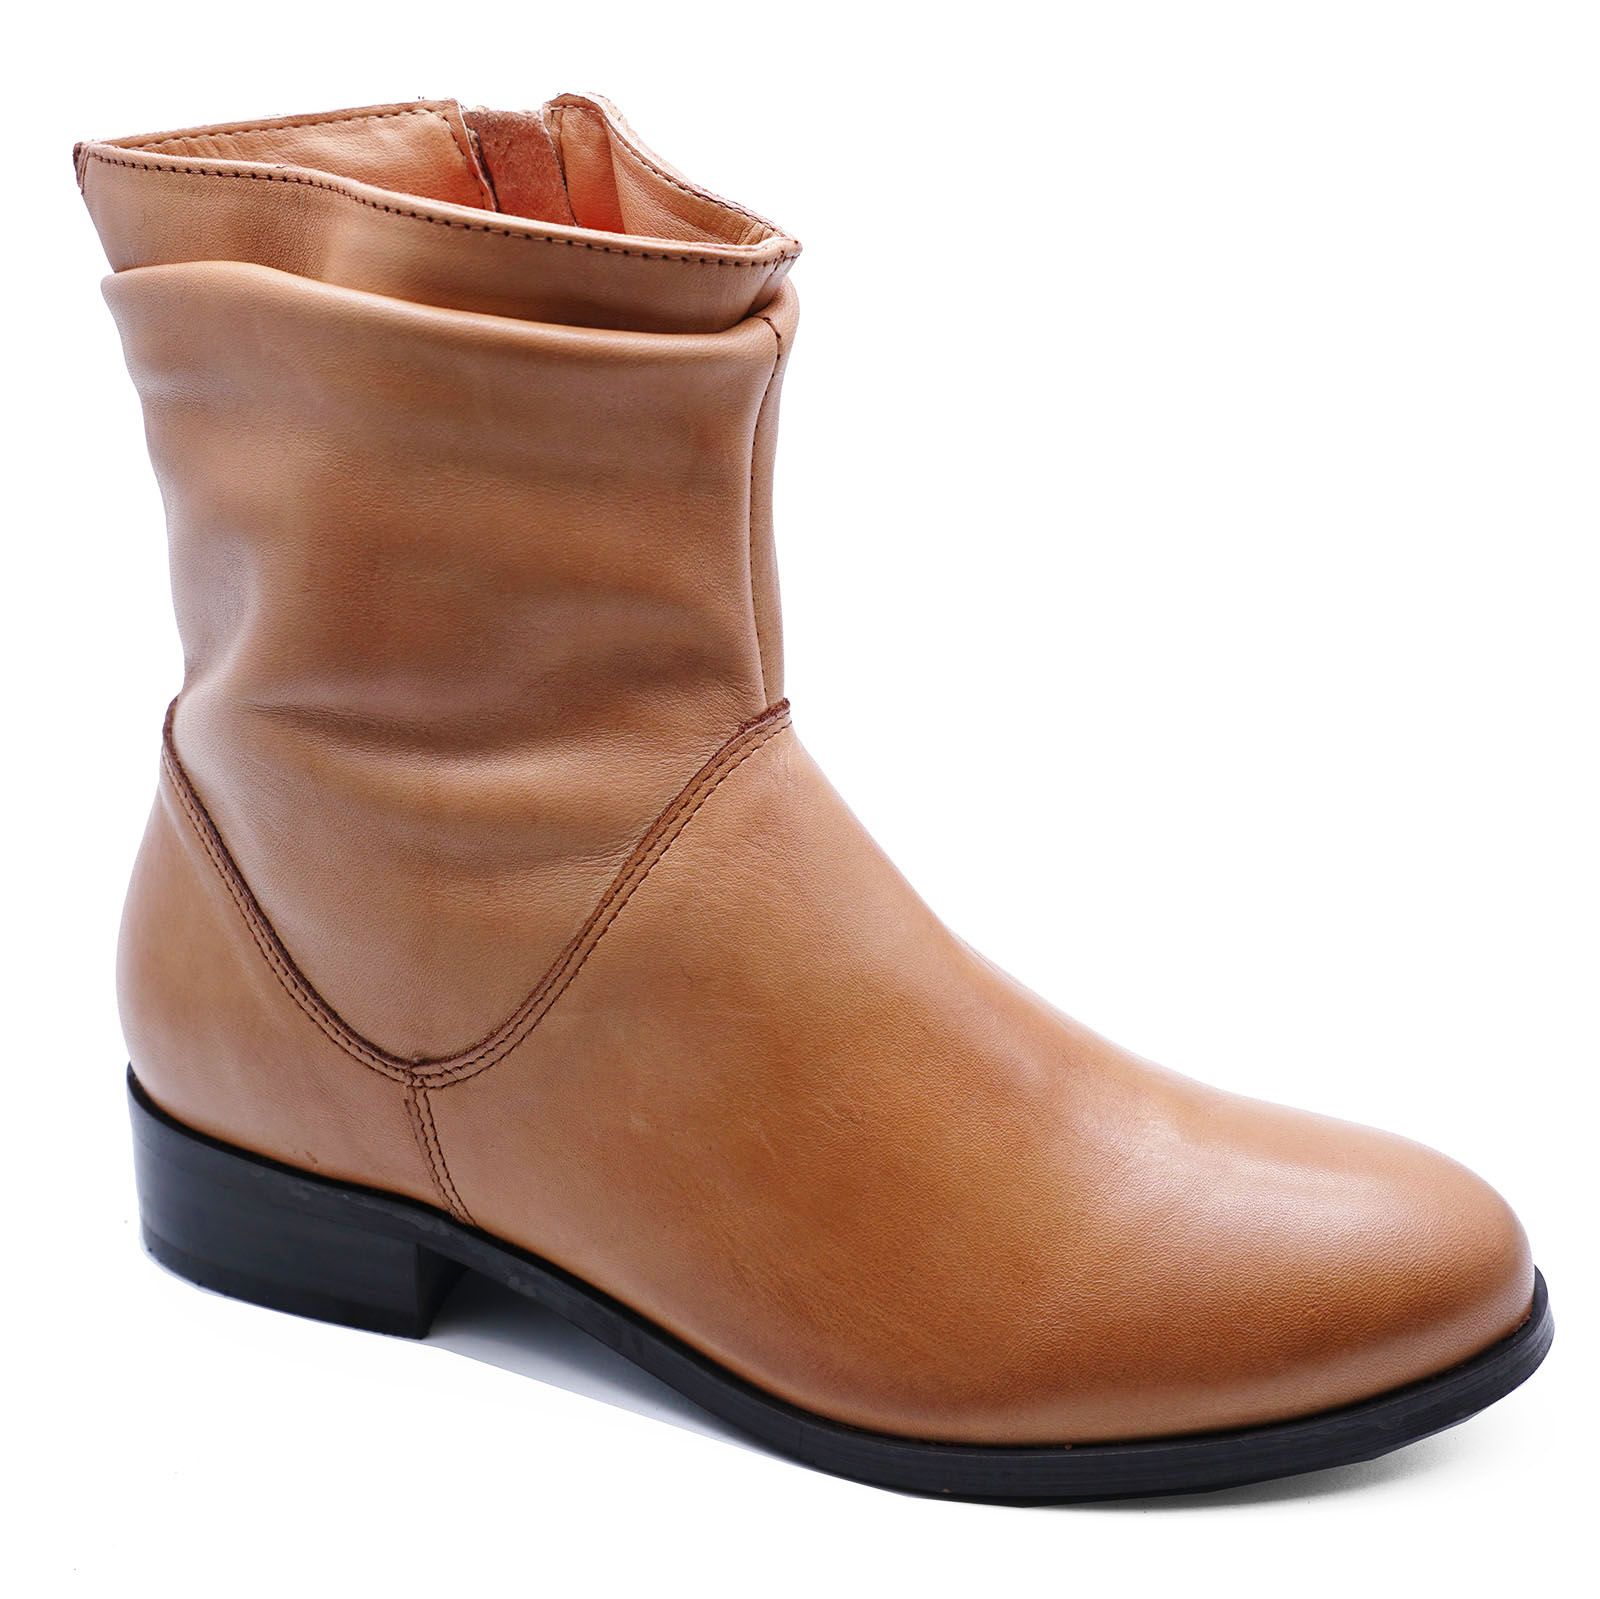 LADIES-FLAT-GENUINE-LEATHER-TAN-ZIP-UP-ANKLE-CALF-BOOTS-COMFY-SHOES-SIZES-2-9 thumbnail 22